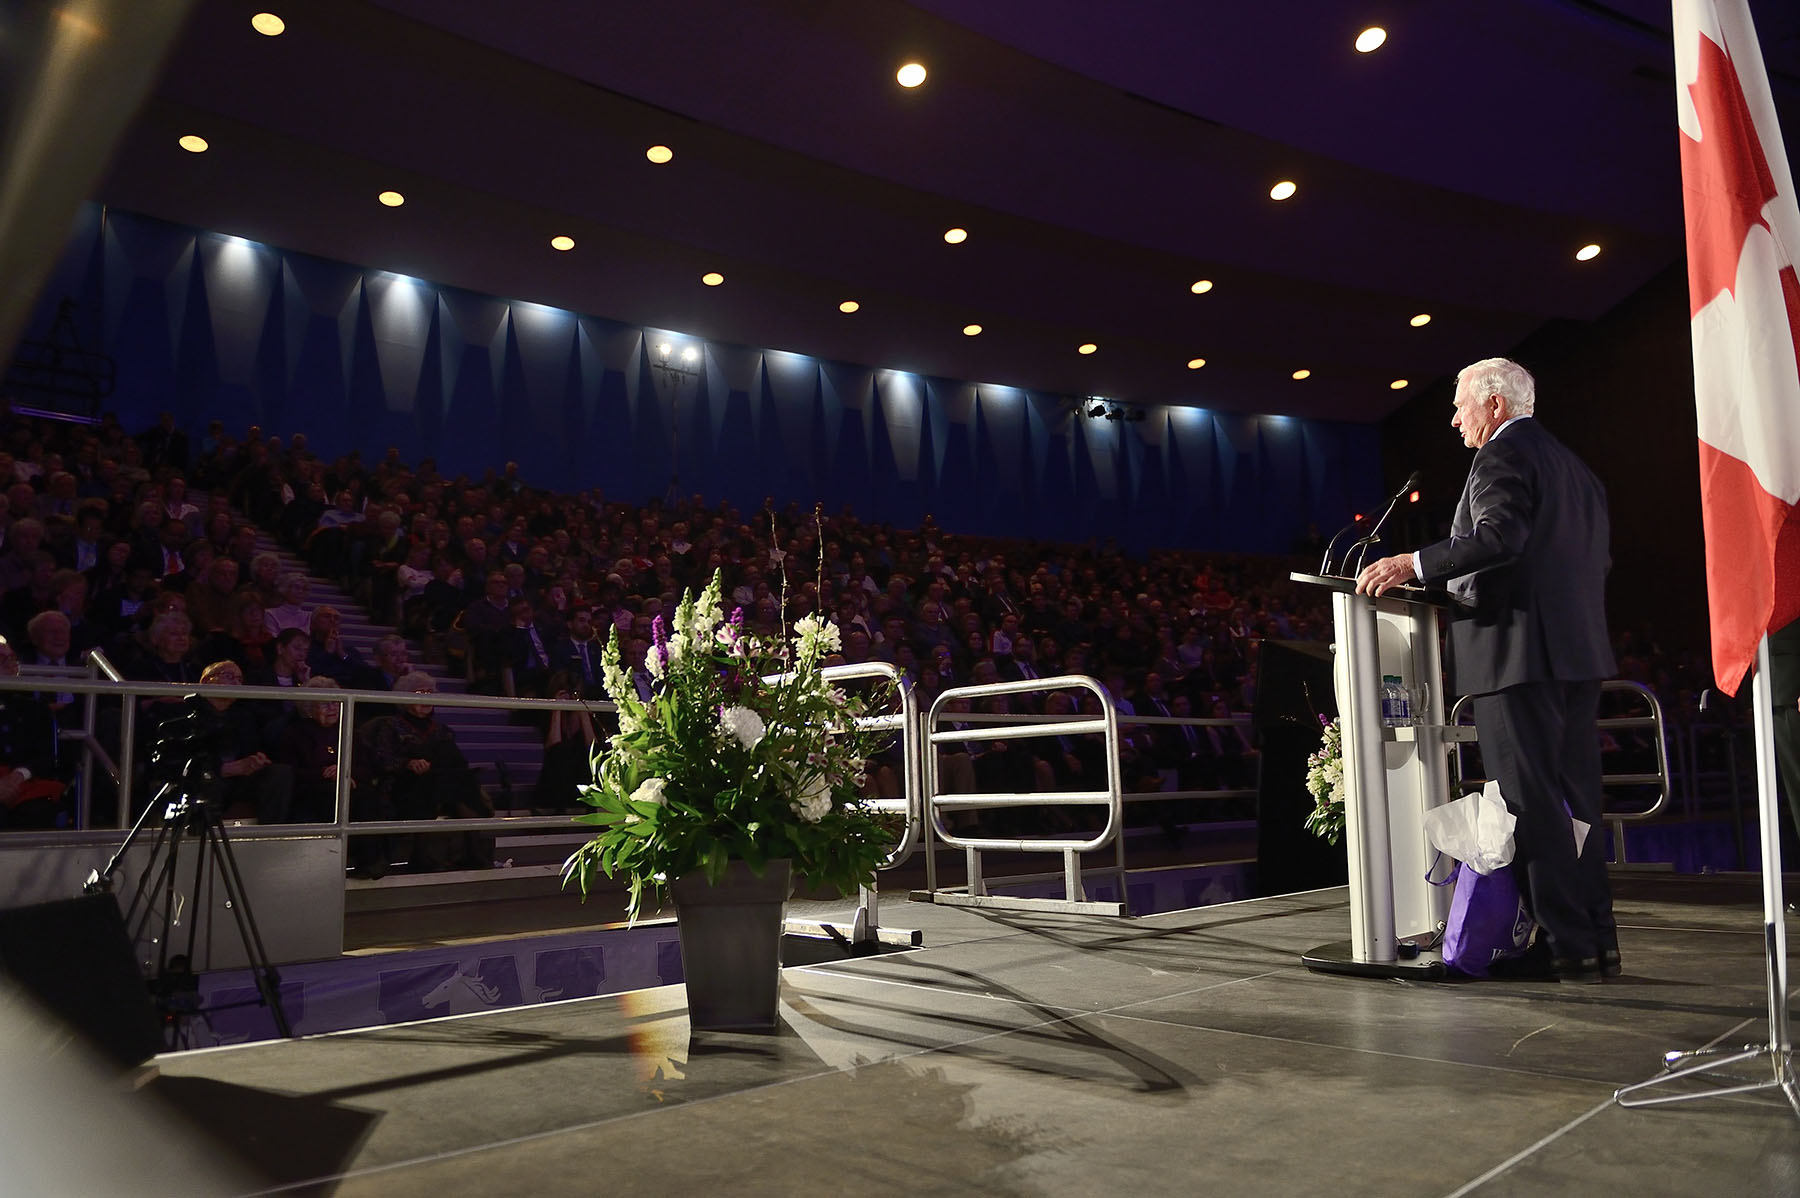 Their Excellencies attended the President's Lecture Series where the Governor General delivered a keynote address on the theme of trust, specifically how professionals, educators and citizens can reinforce trust and strengthen the social contract in Canada.